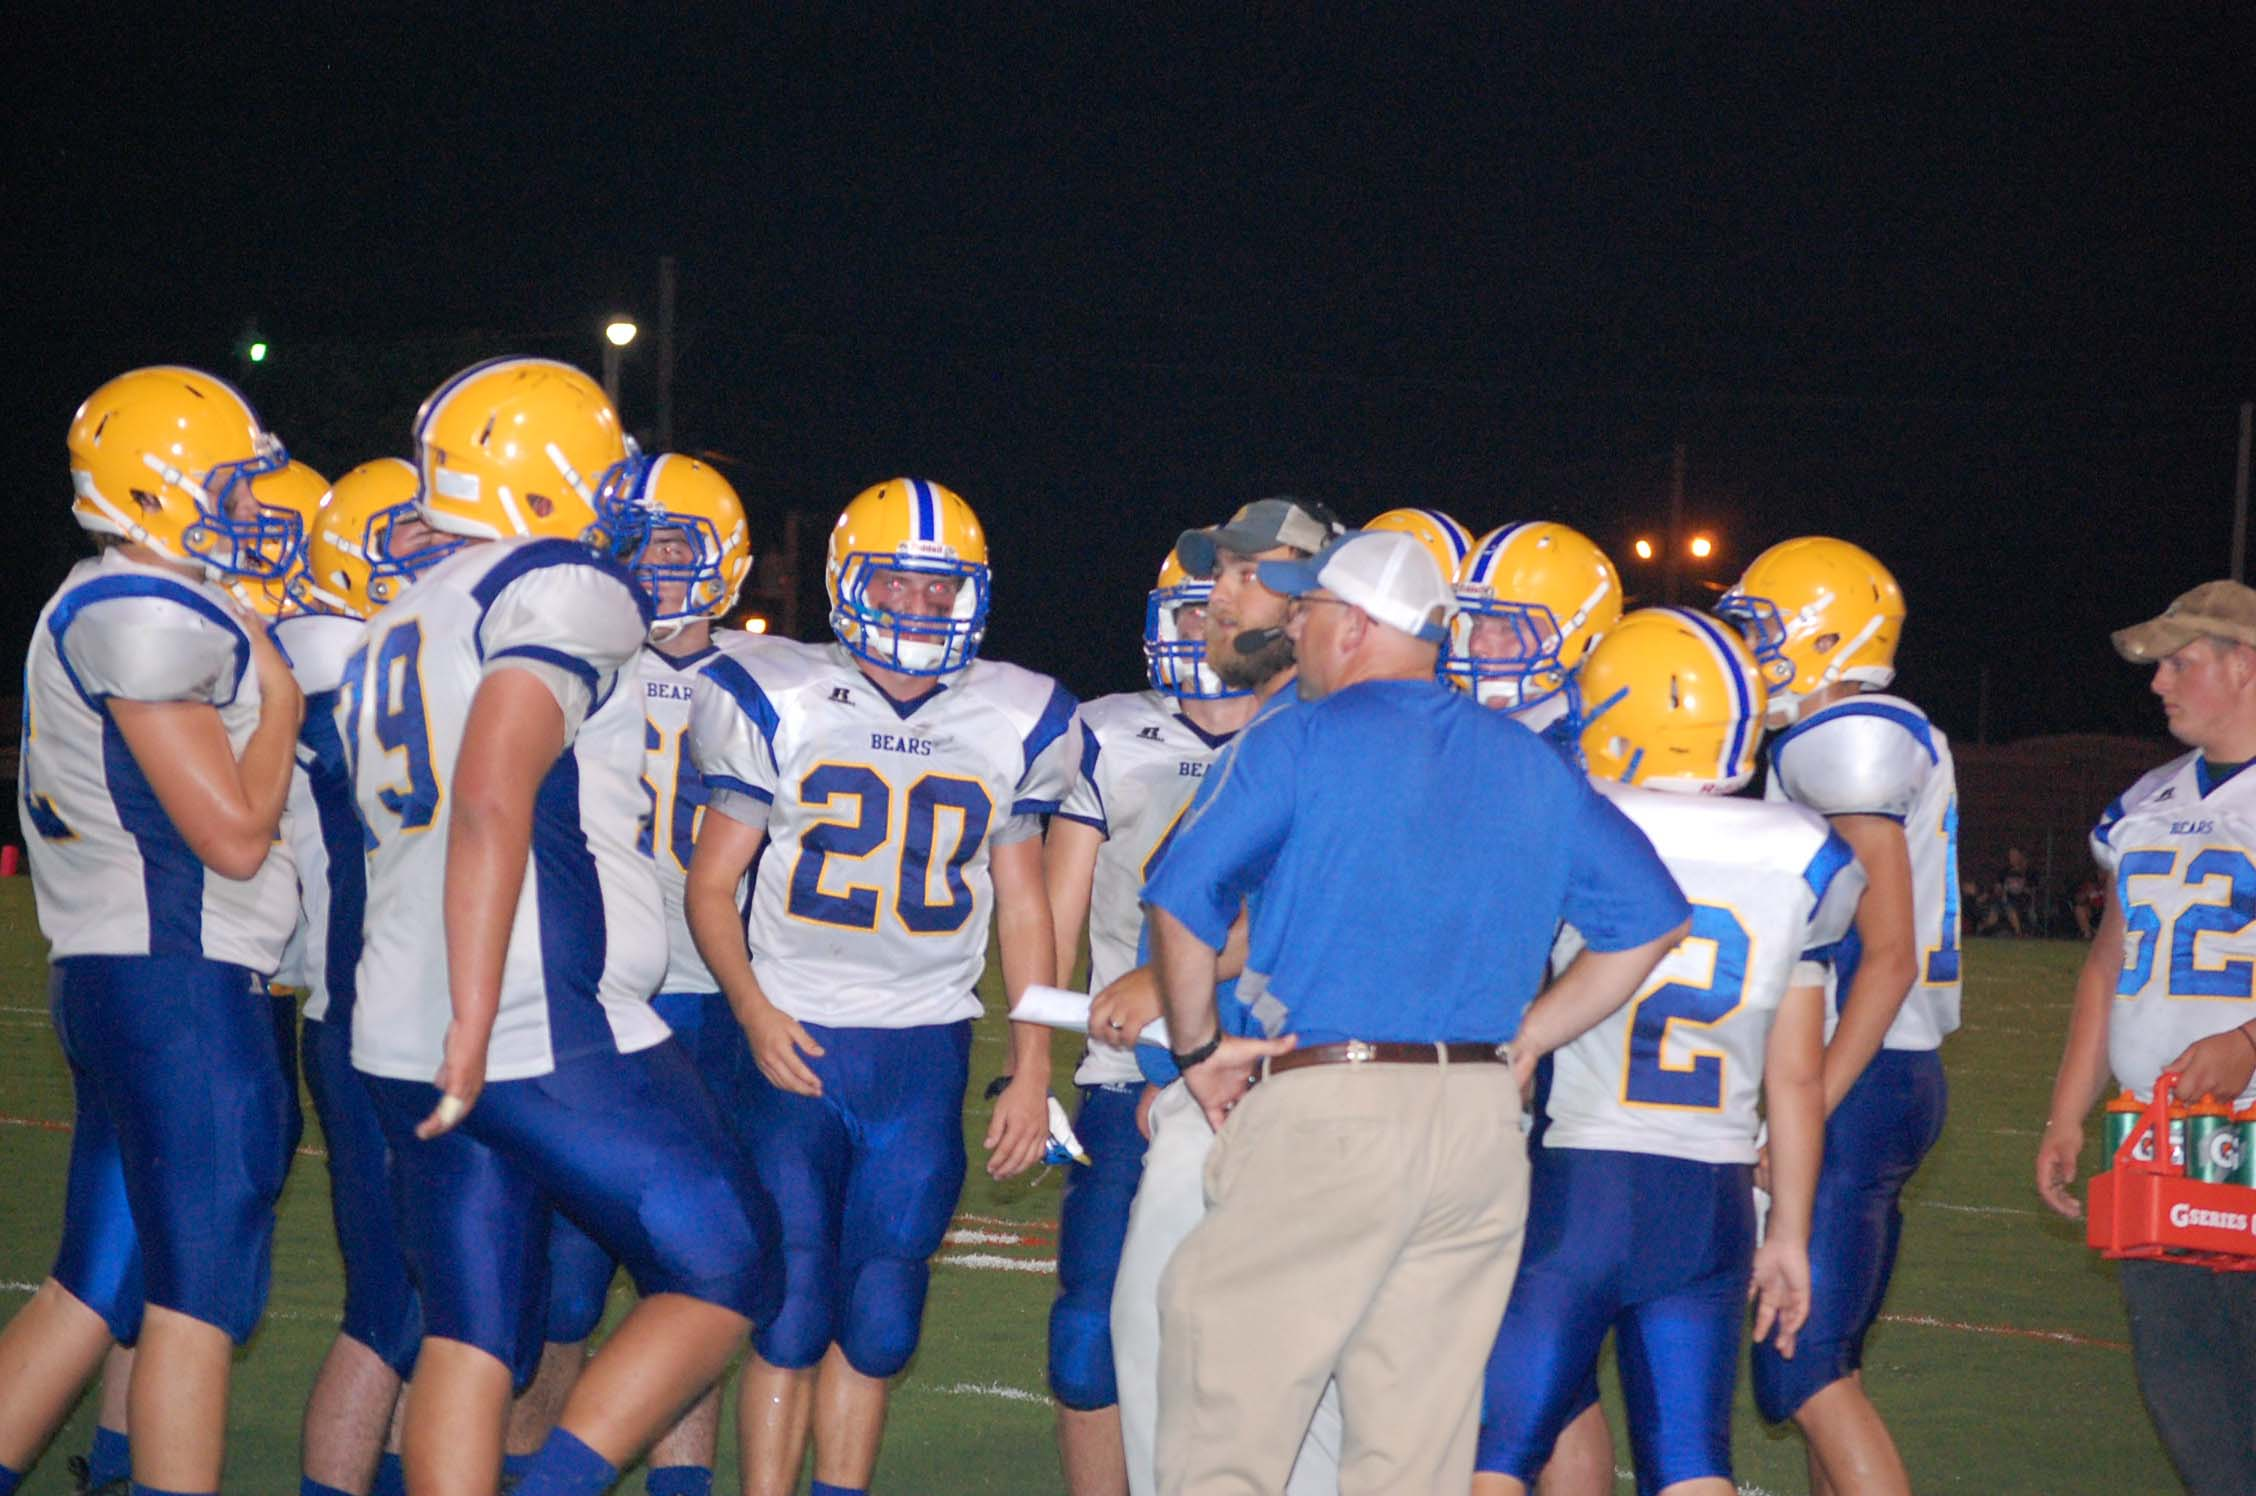 Ava's head coach Dan Swofford and offensive coordinator Casey Merrifield talk things over on the sideline with the Bears during a water break Friday night. The start of the game was backed off till 7:30 because of the heat, but it was still 90 degrees when the game ended just before 10 p.m.